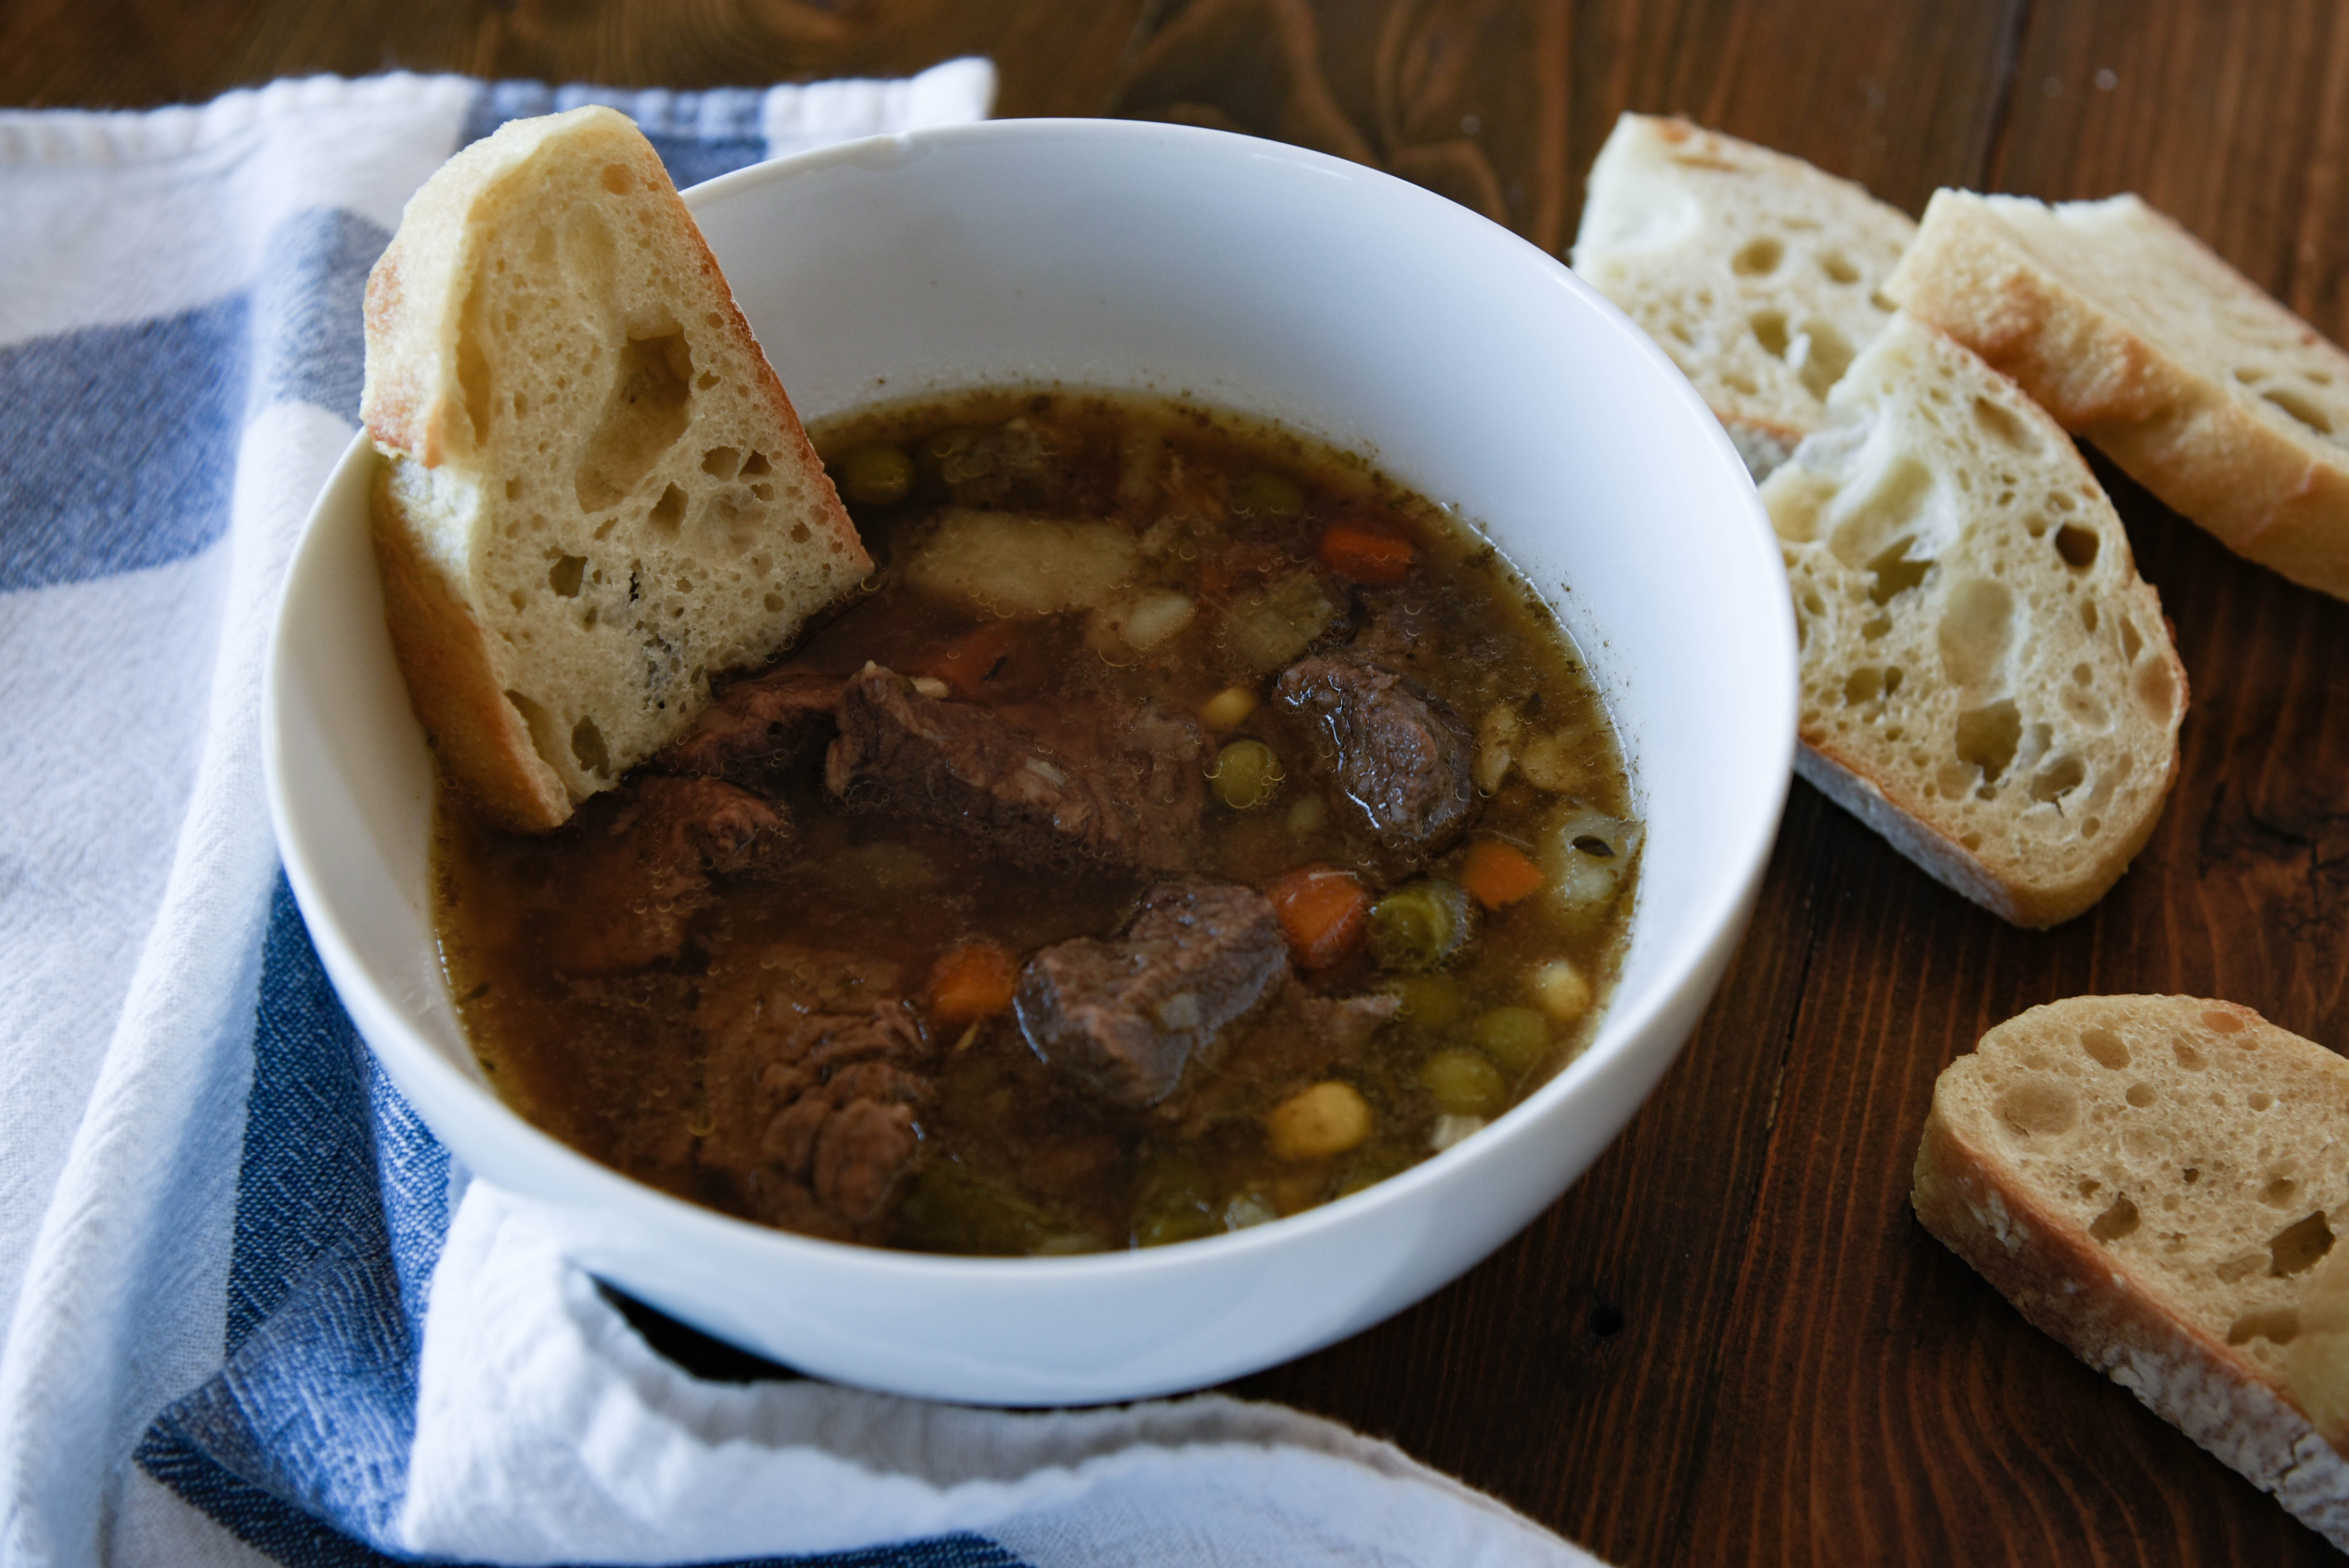 A bowl of soup with bread dipped in it